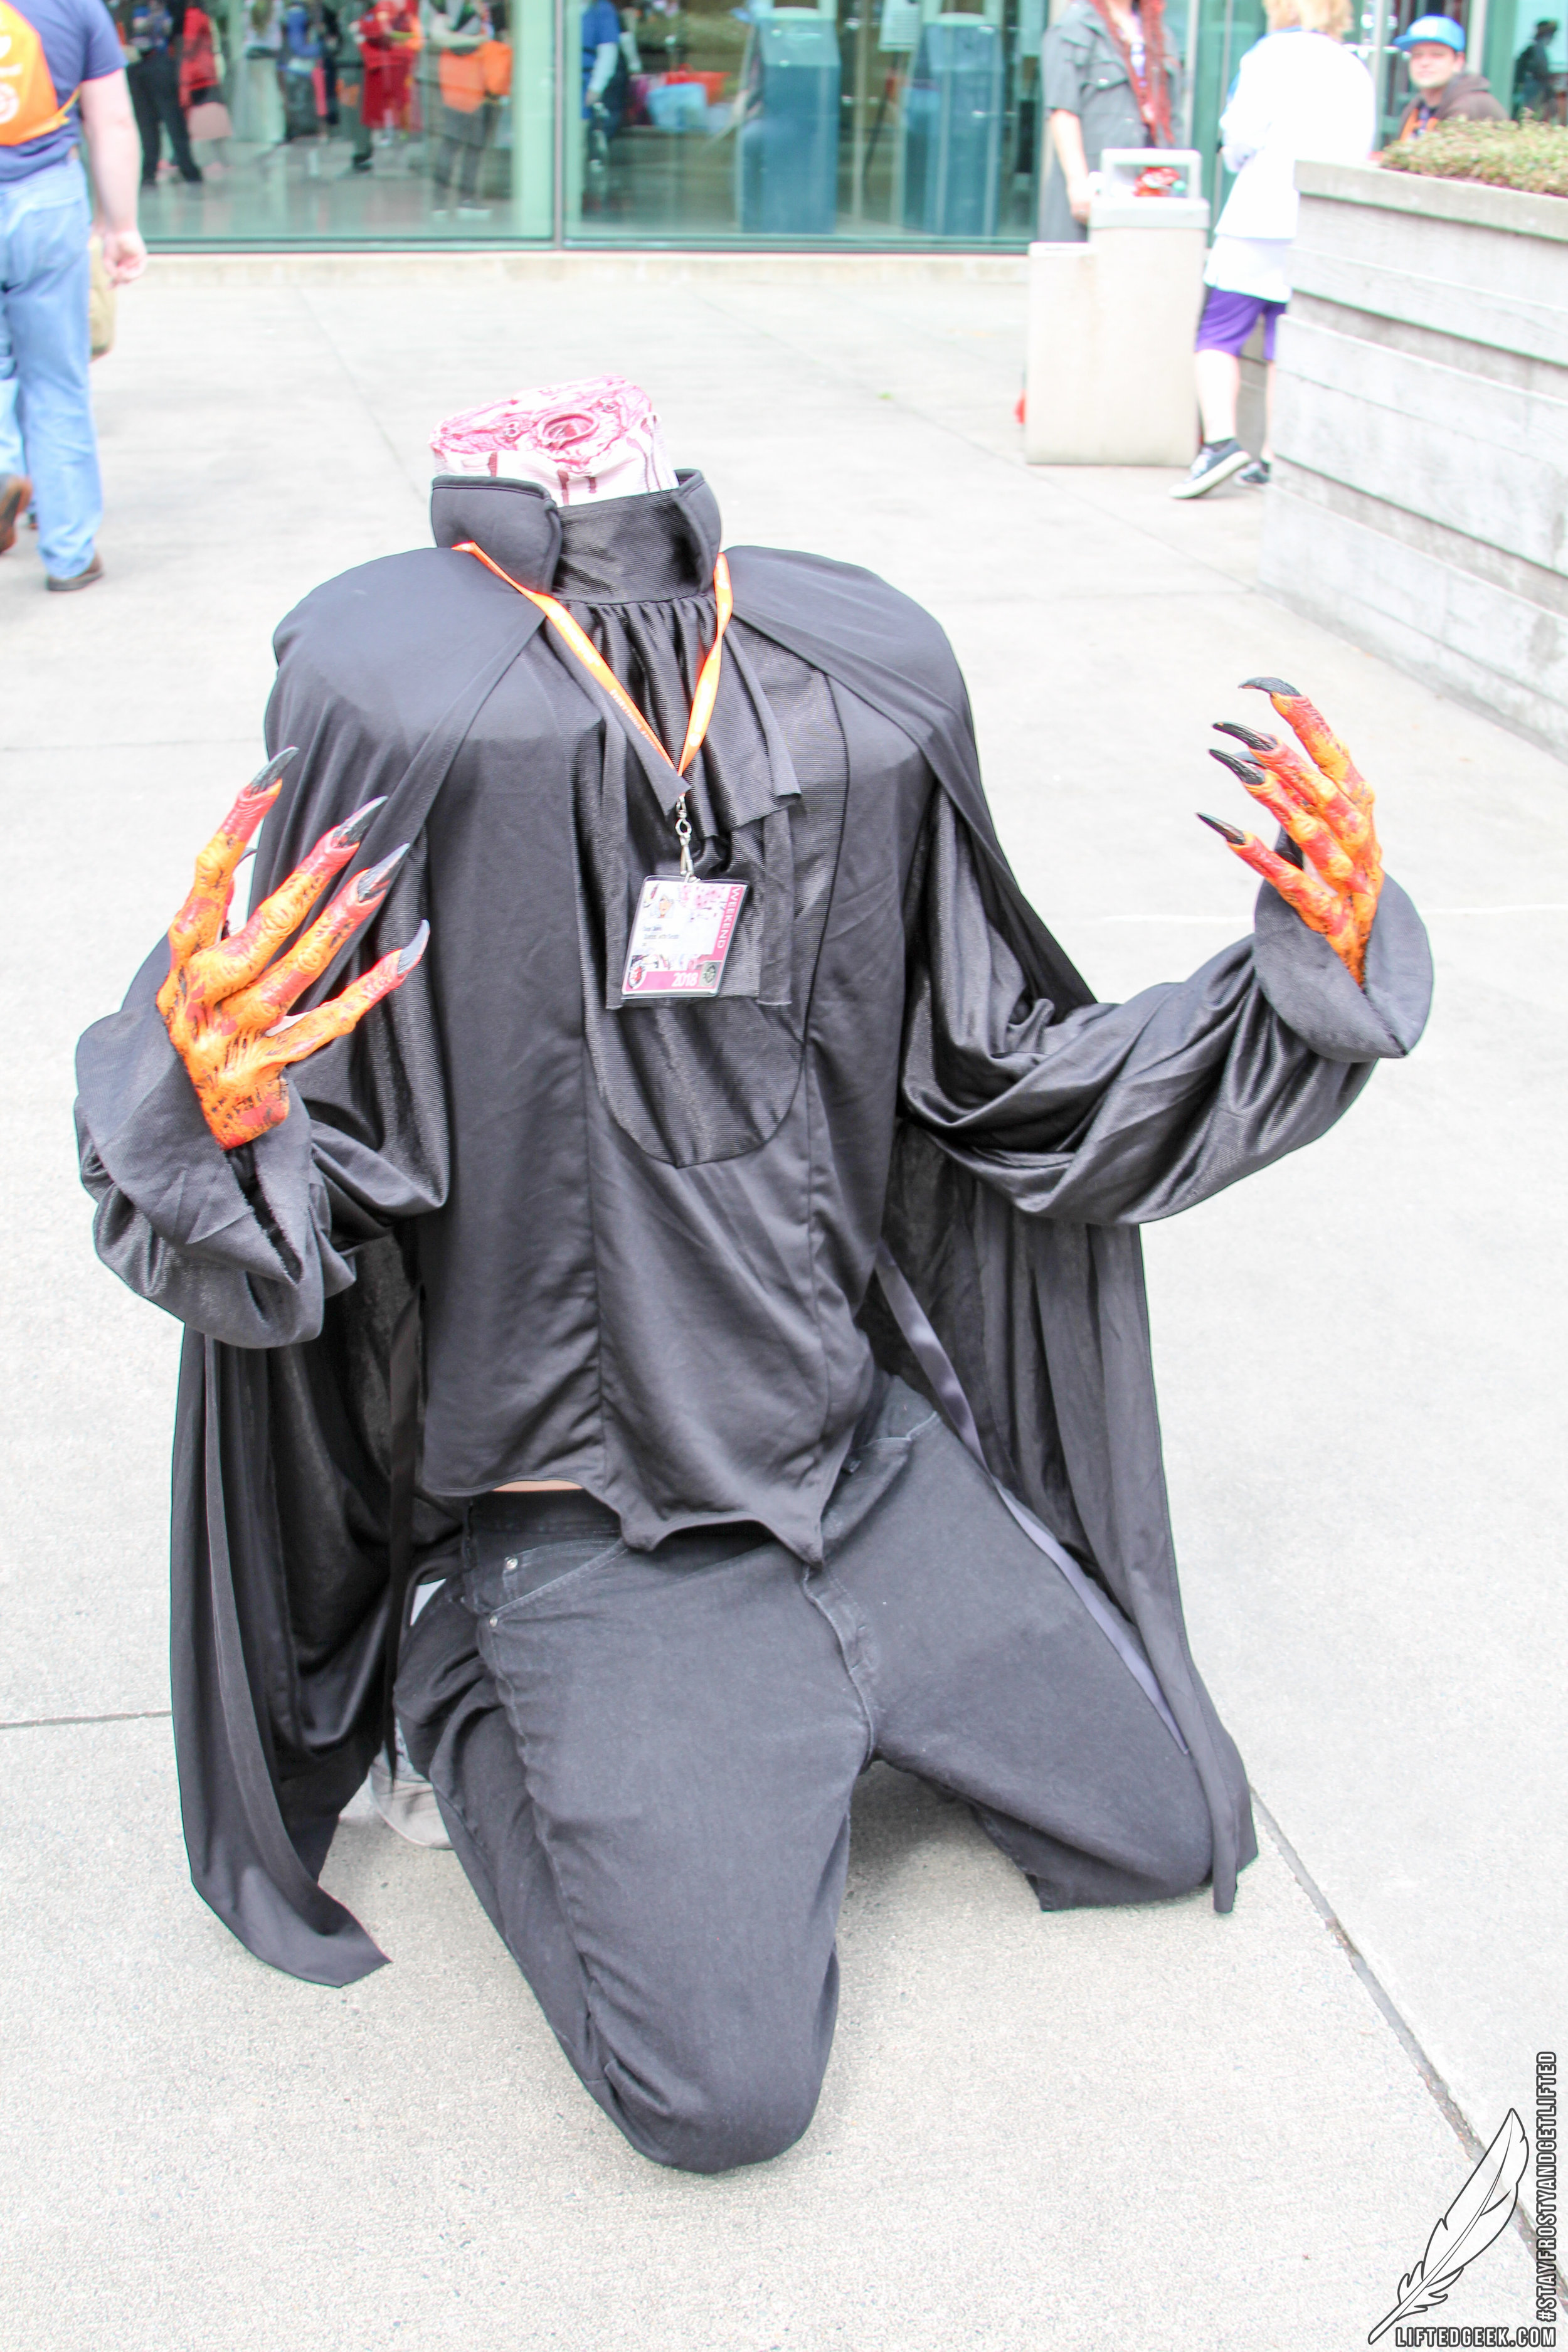 Sakuracon-cosplay-48.jpg